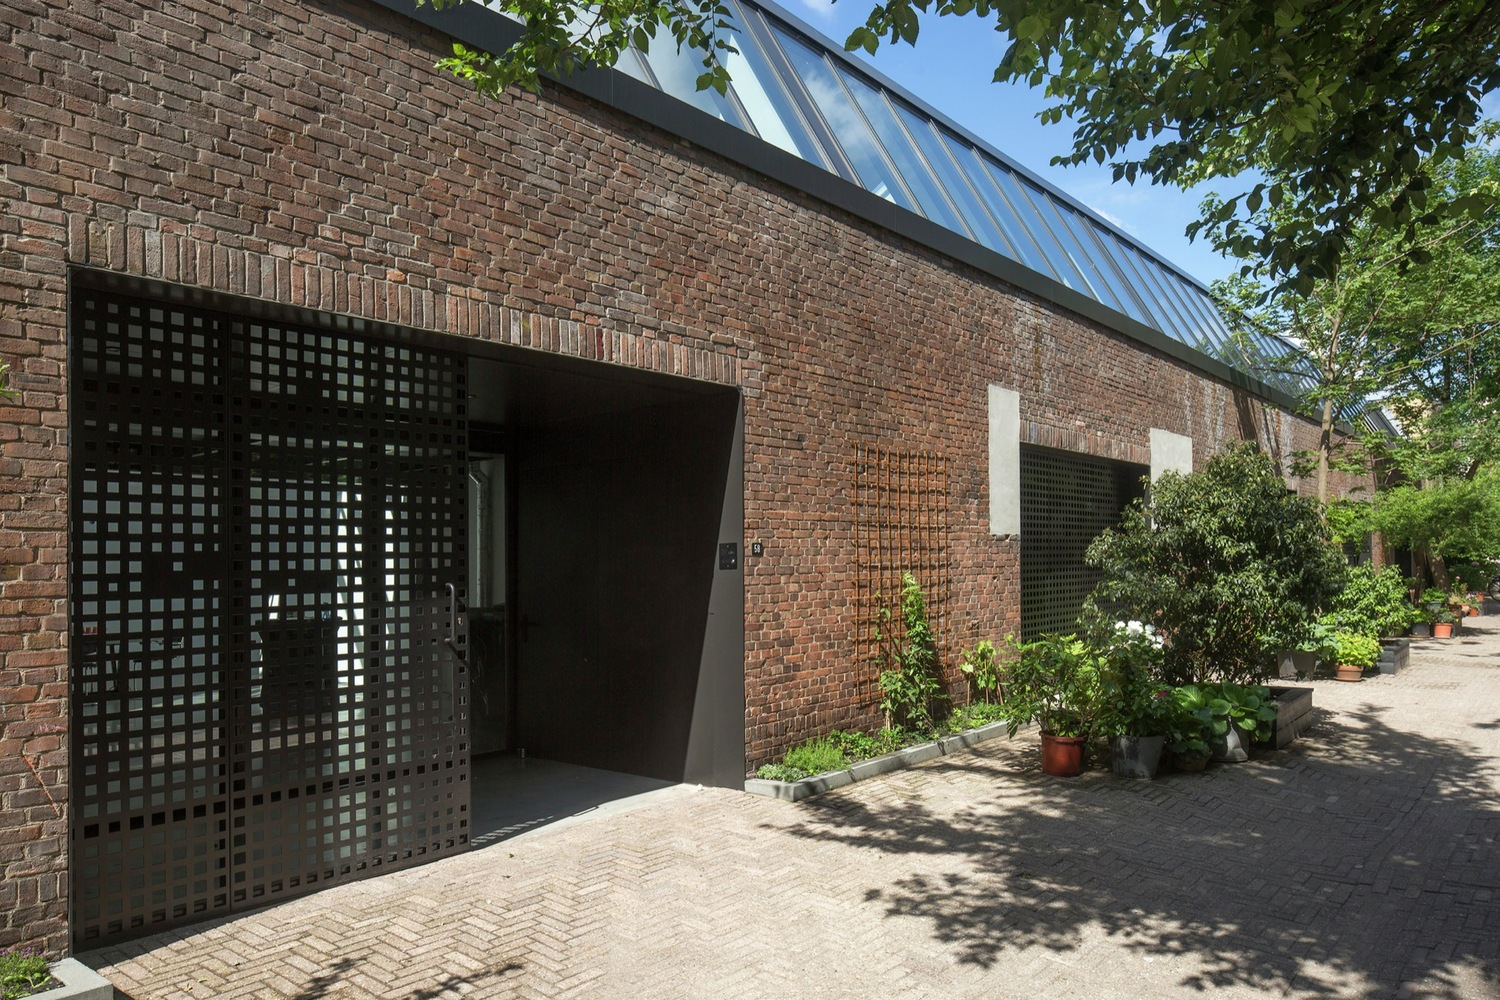 Reconversion Architecte Gallery Of Gearwheel Factory Reconversion Ronald Janssen